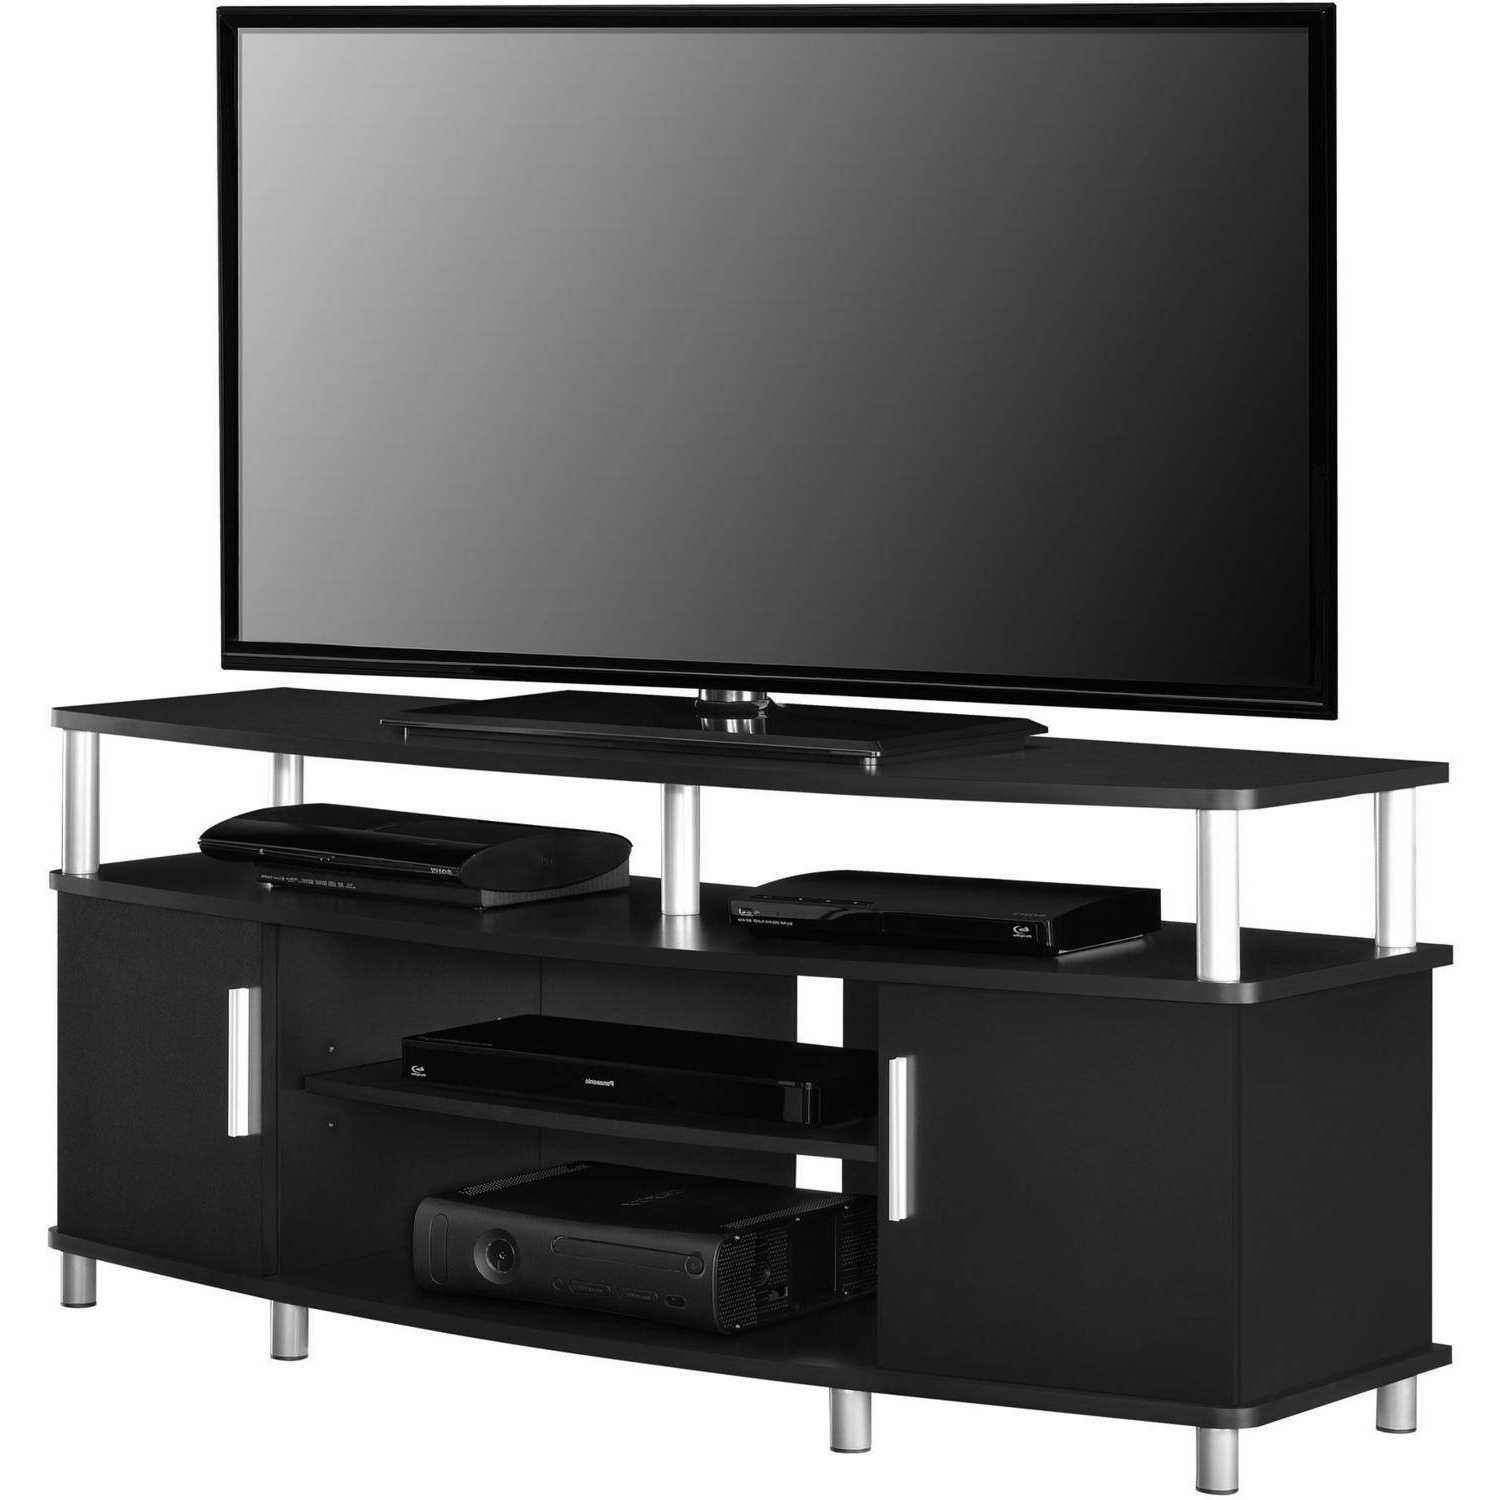 "New Living Family Room Tv Stand For Tvs Up To 50"" Wide With 2 Inside Best And Newest Wide Tv Cabinets (Gallery 2 of 20)"